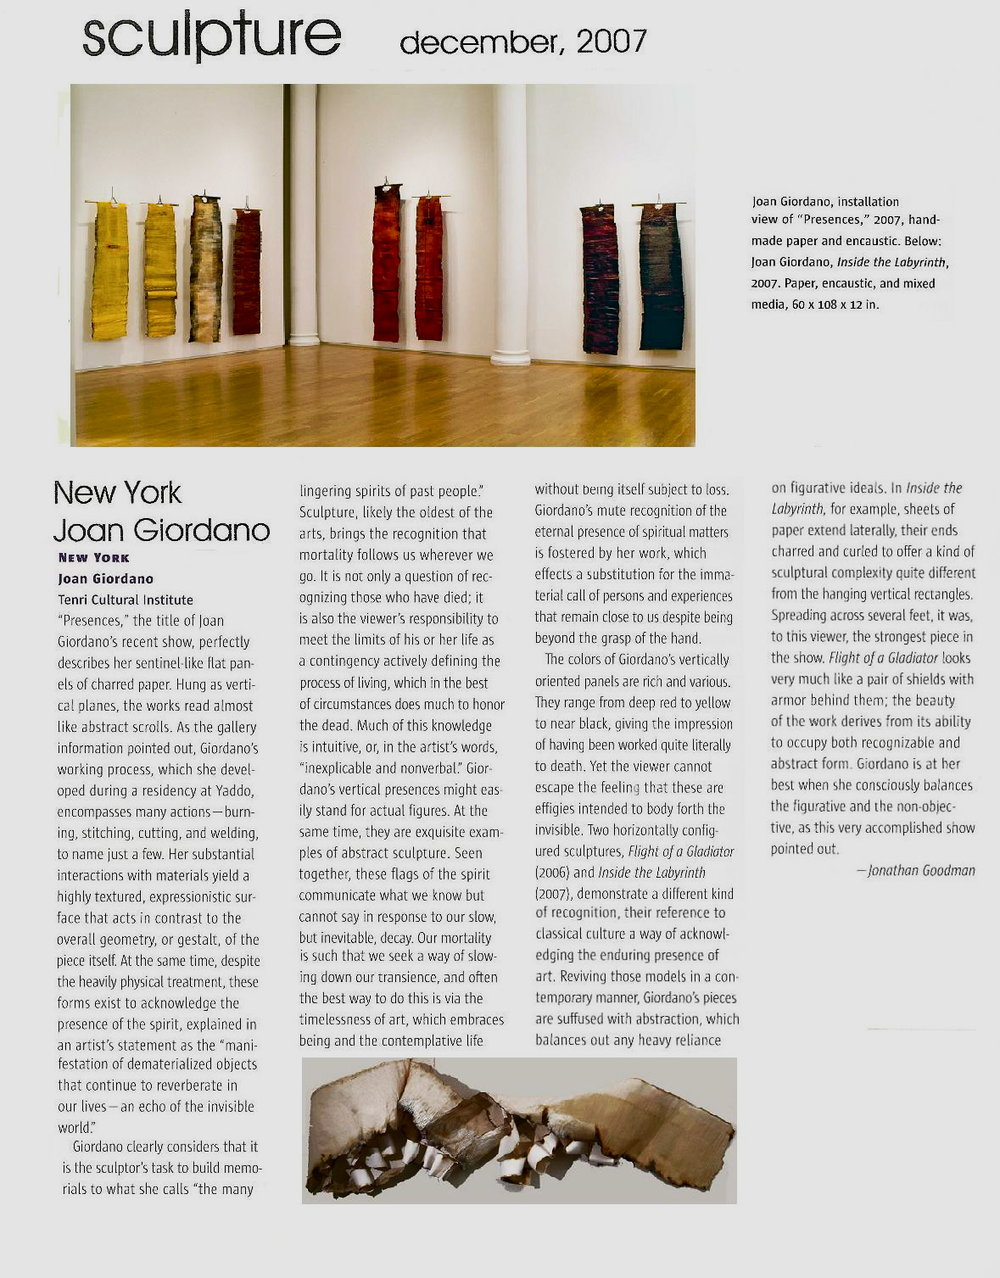 Sculpture+Magazine+Review+by+Jonathan+Goodman.jpg